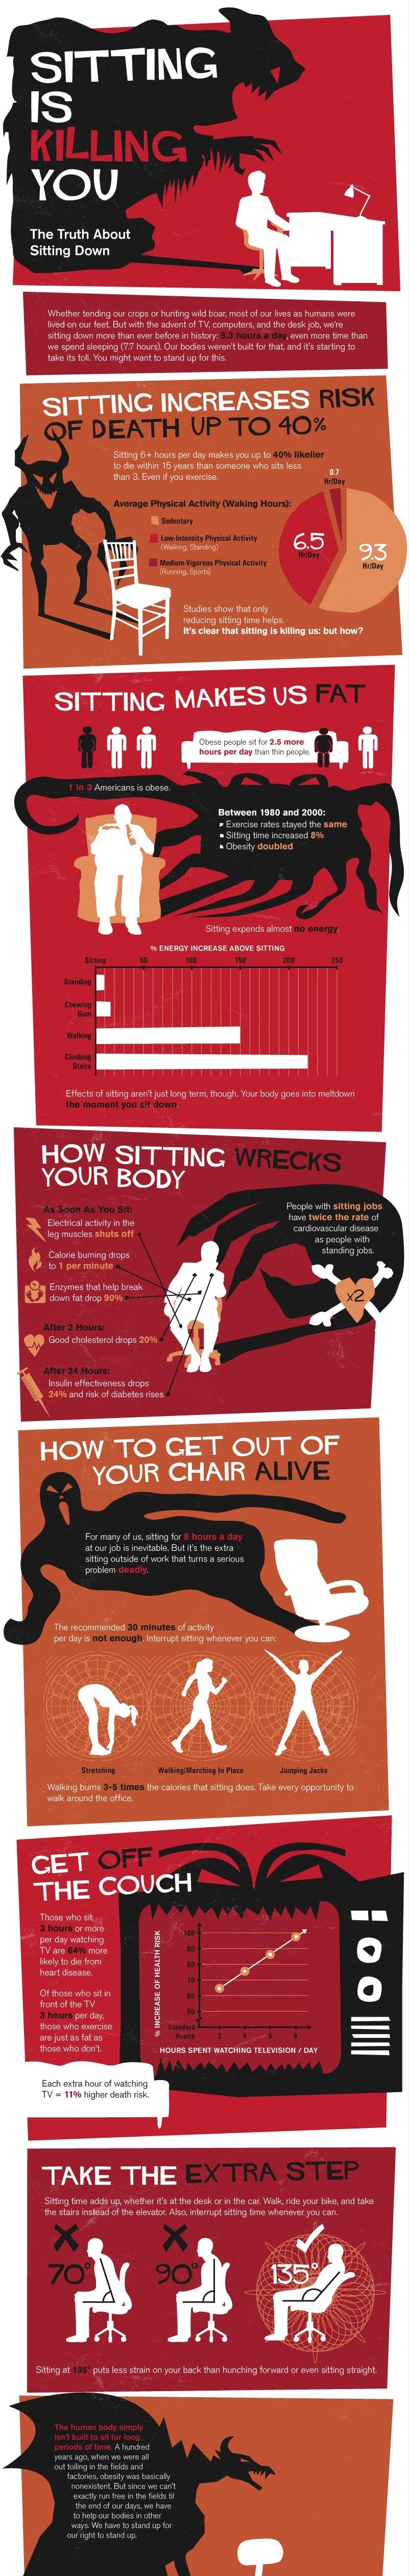 why sitting is killing you infographic